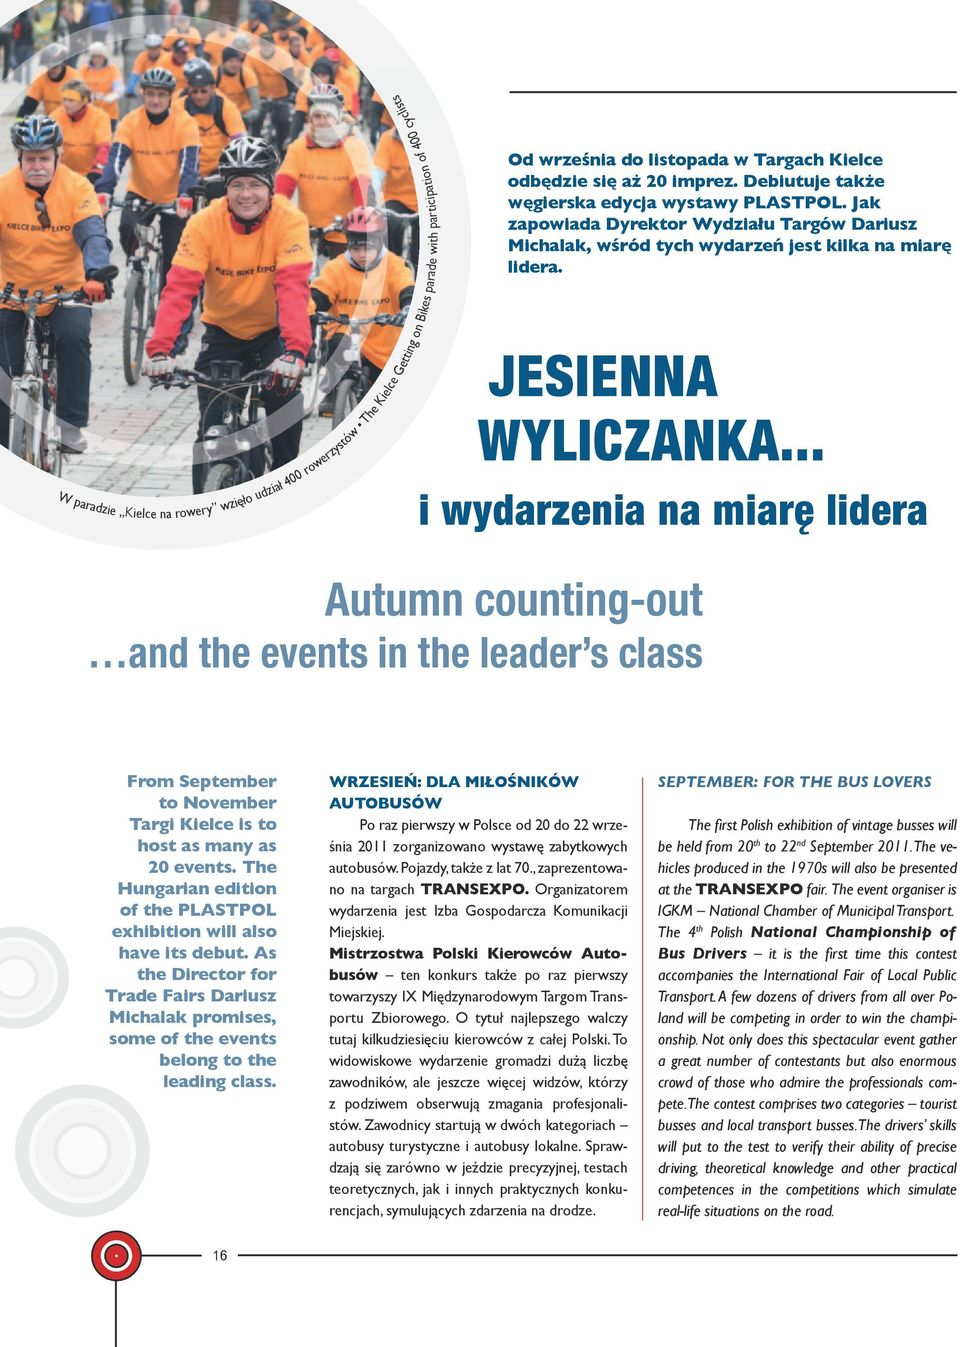 .. i wydarzenia na miarę lidera Autumn counting-out and the events in the leader s class From September to November Targi Kielce is to host as many as 20 events.